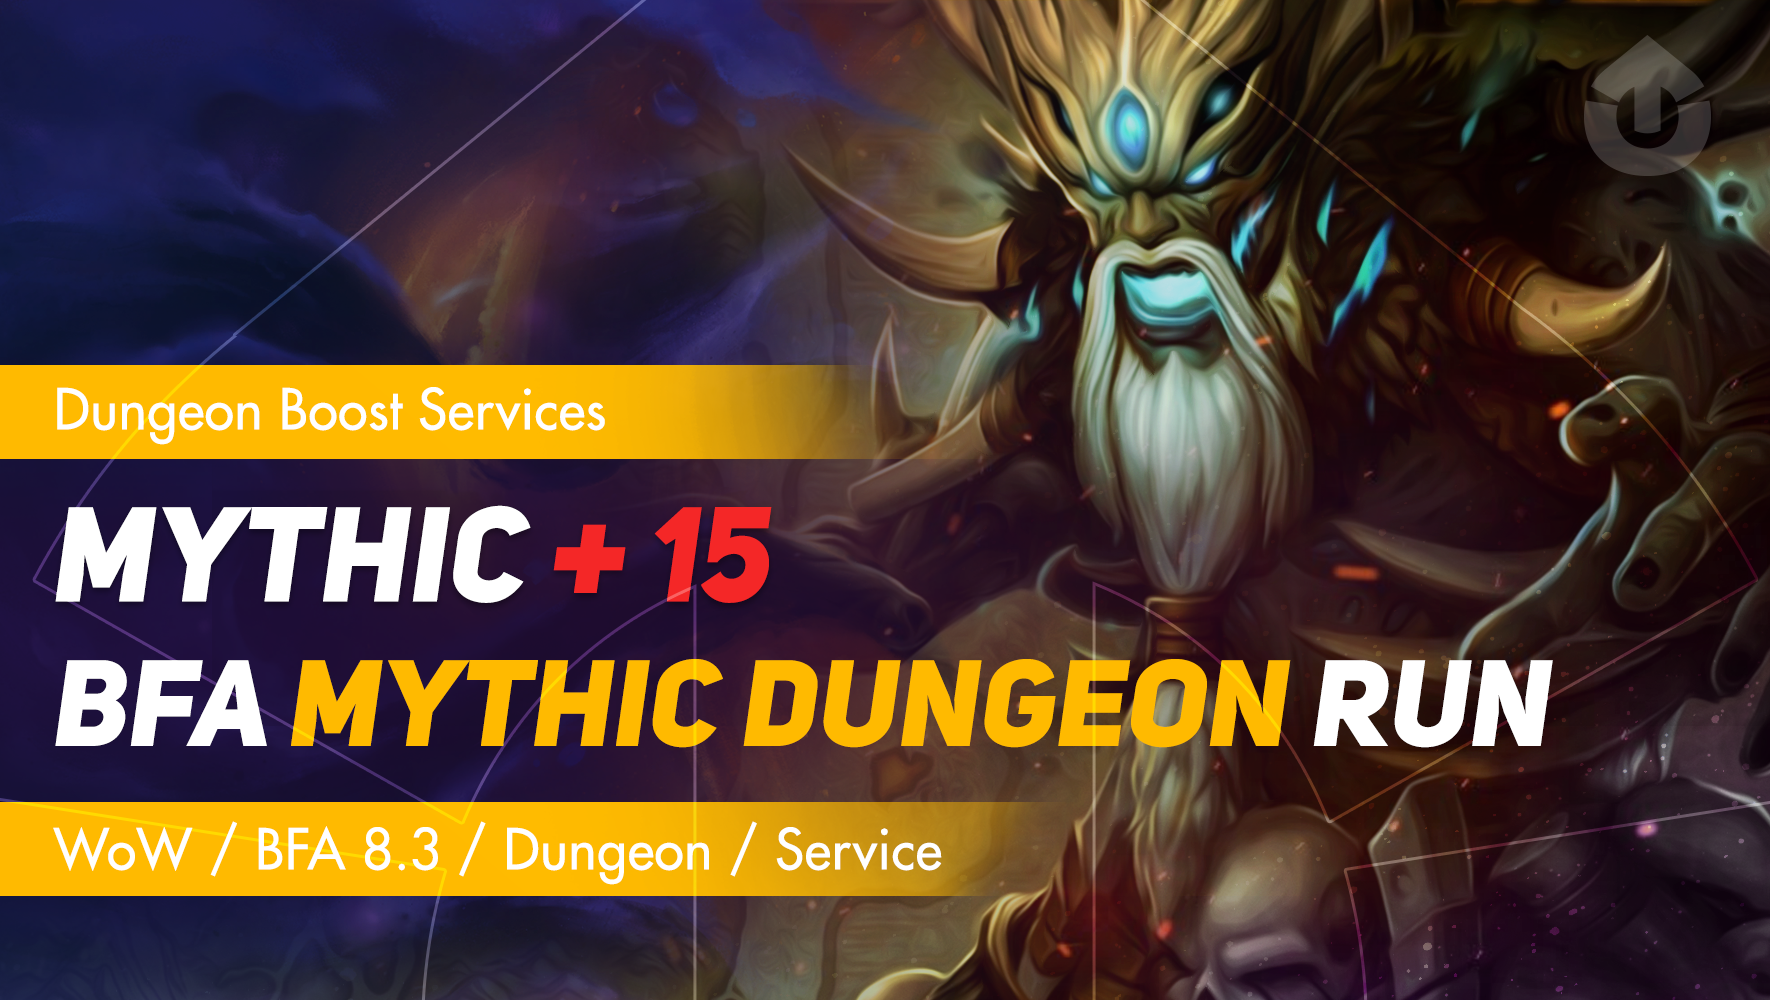 MYTHIC DUNGEON BOOST GBD - e2p.com